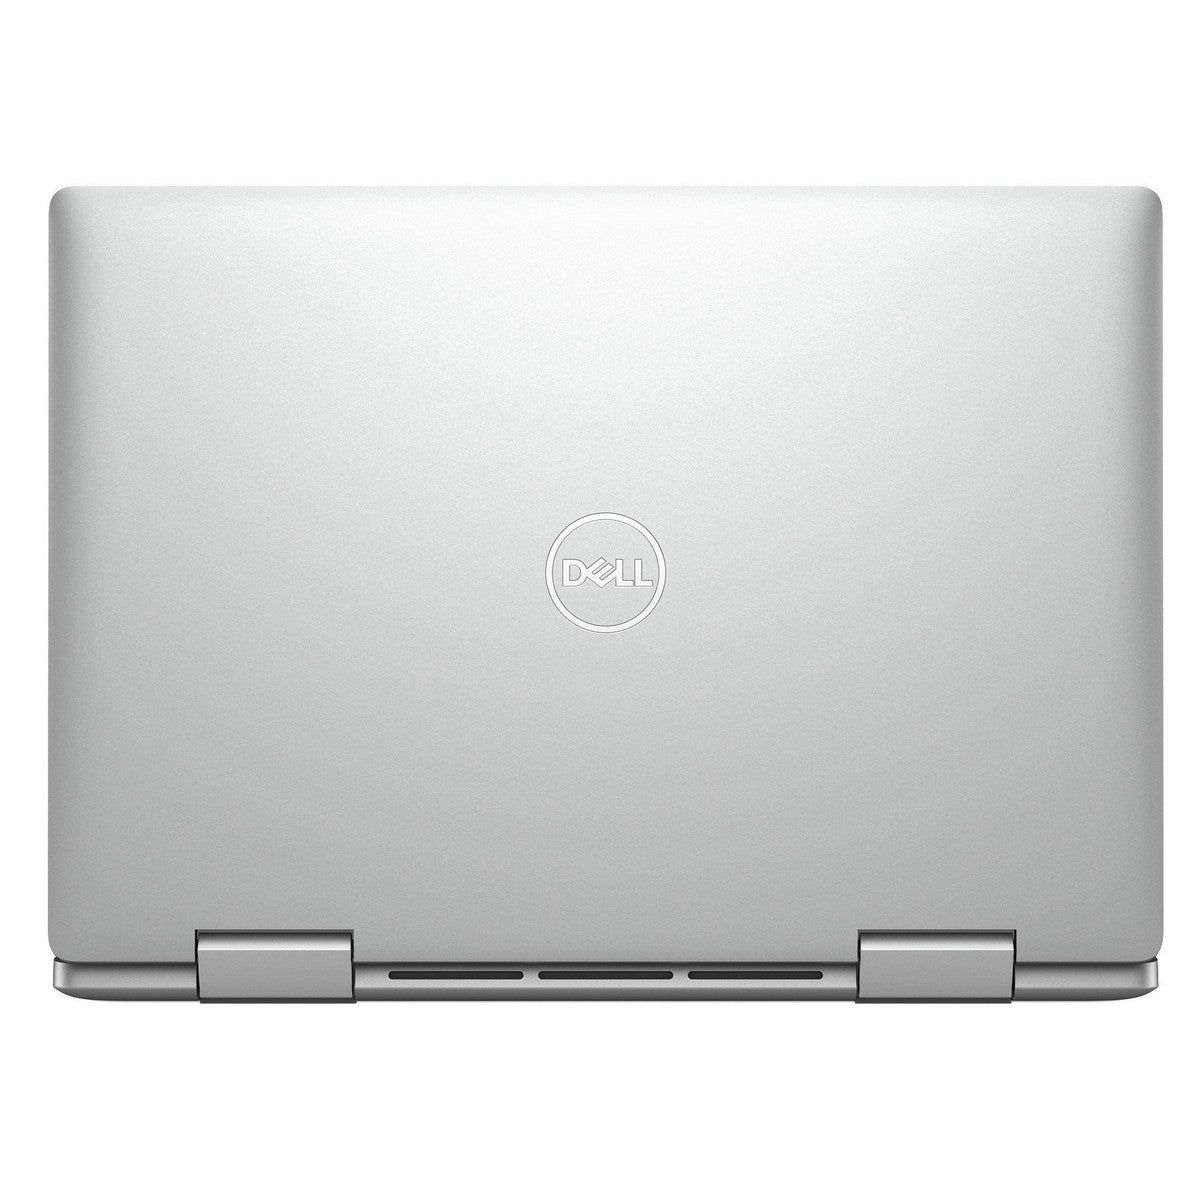 Dell Inspiron 14-5482 X360 2 in 1 Laptop 14'' FHD IPS , Intel Core i7 i7-8565U 1.80GHz 8M Cache up to 4.60GHz, 16GB RAM, Intel UHD GPU, 512GB SSD, Touchscreen, Windows 10, Platinum Silver